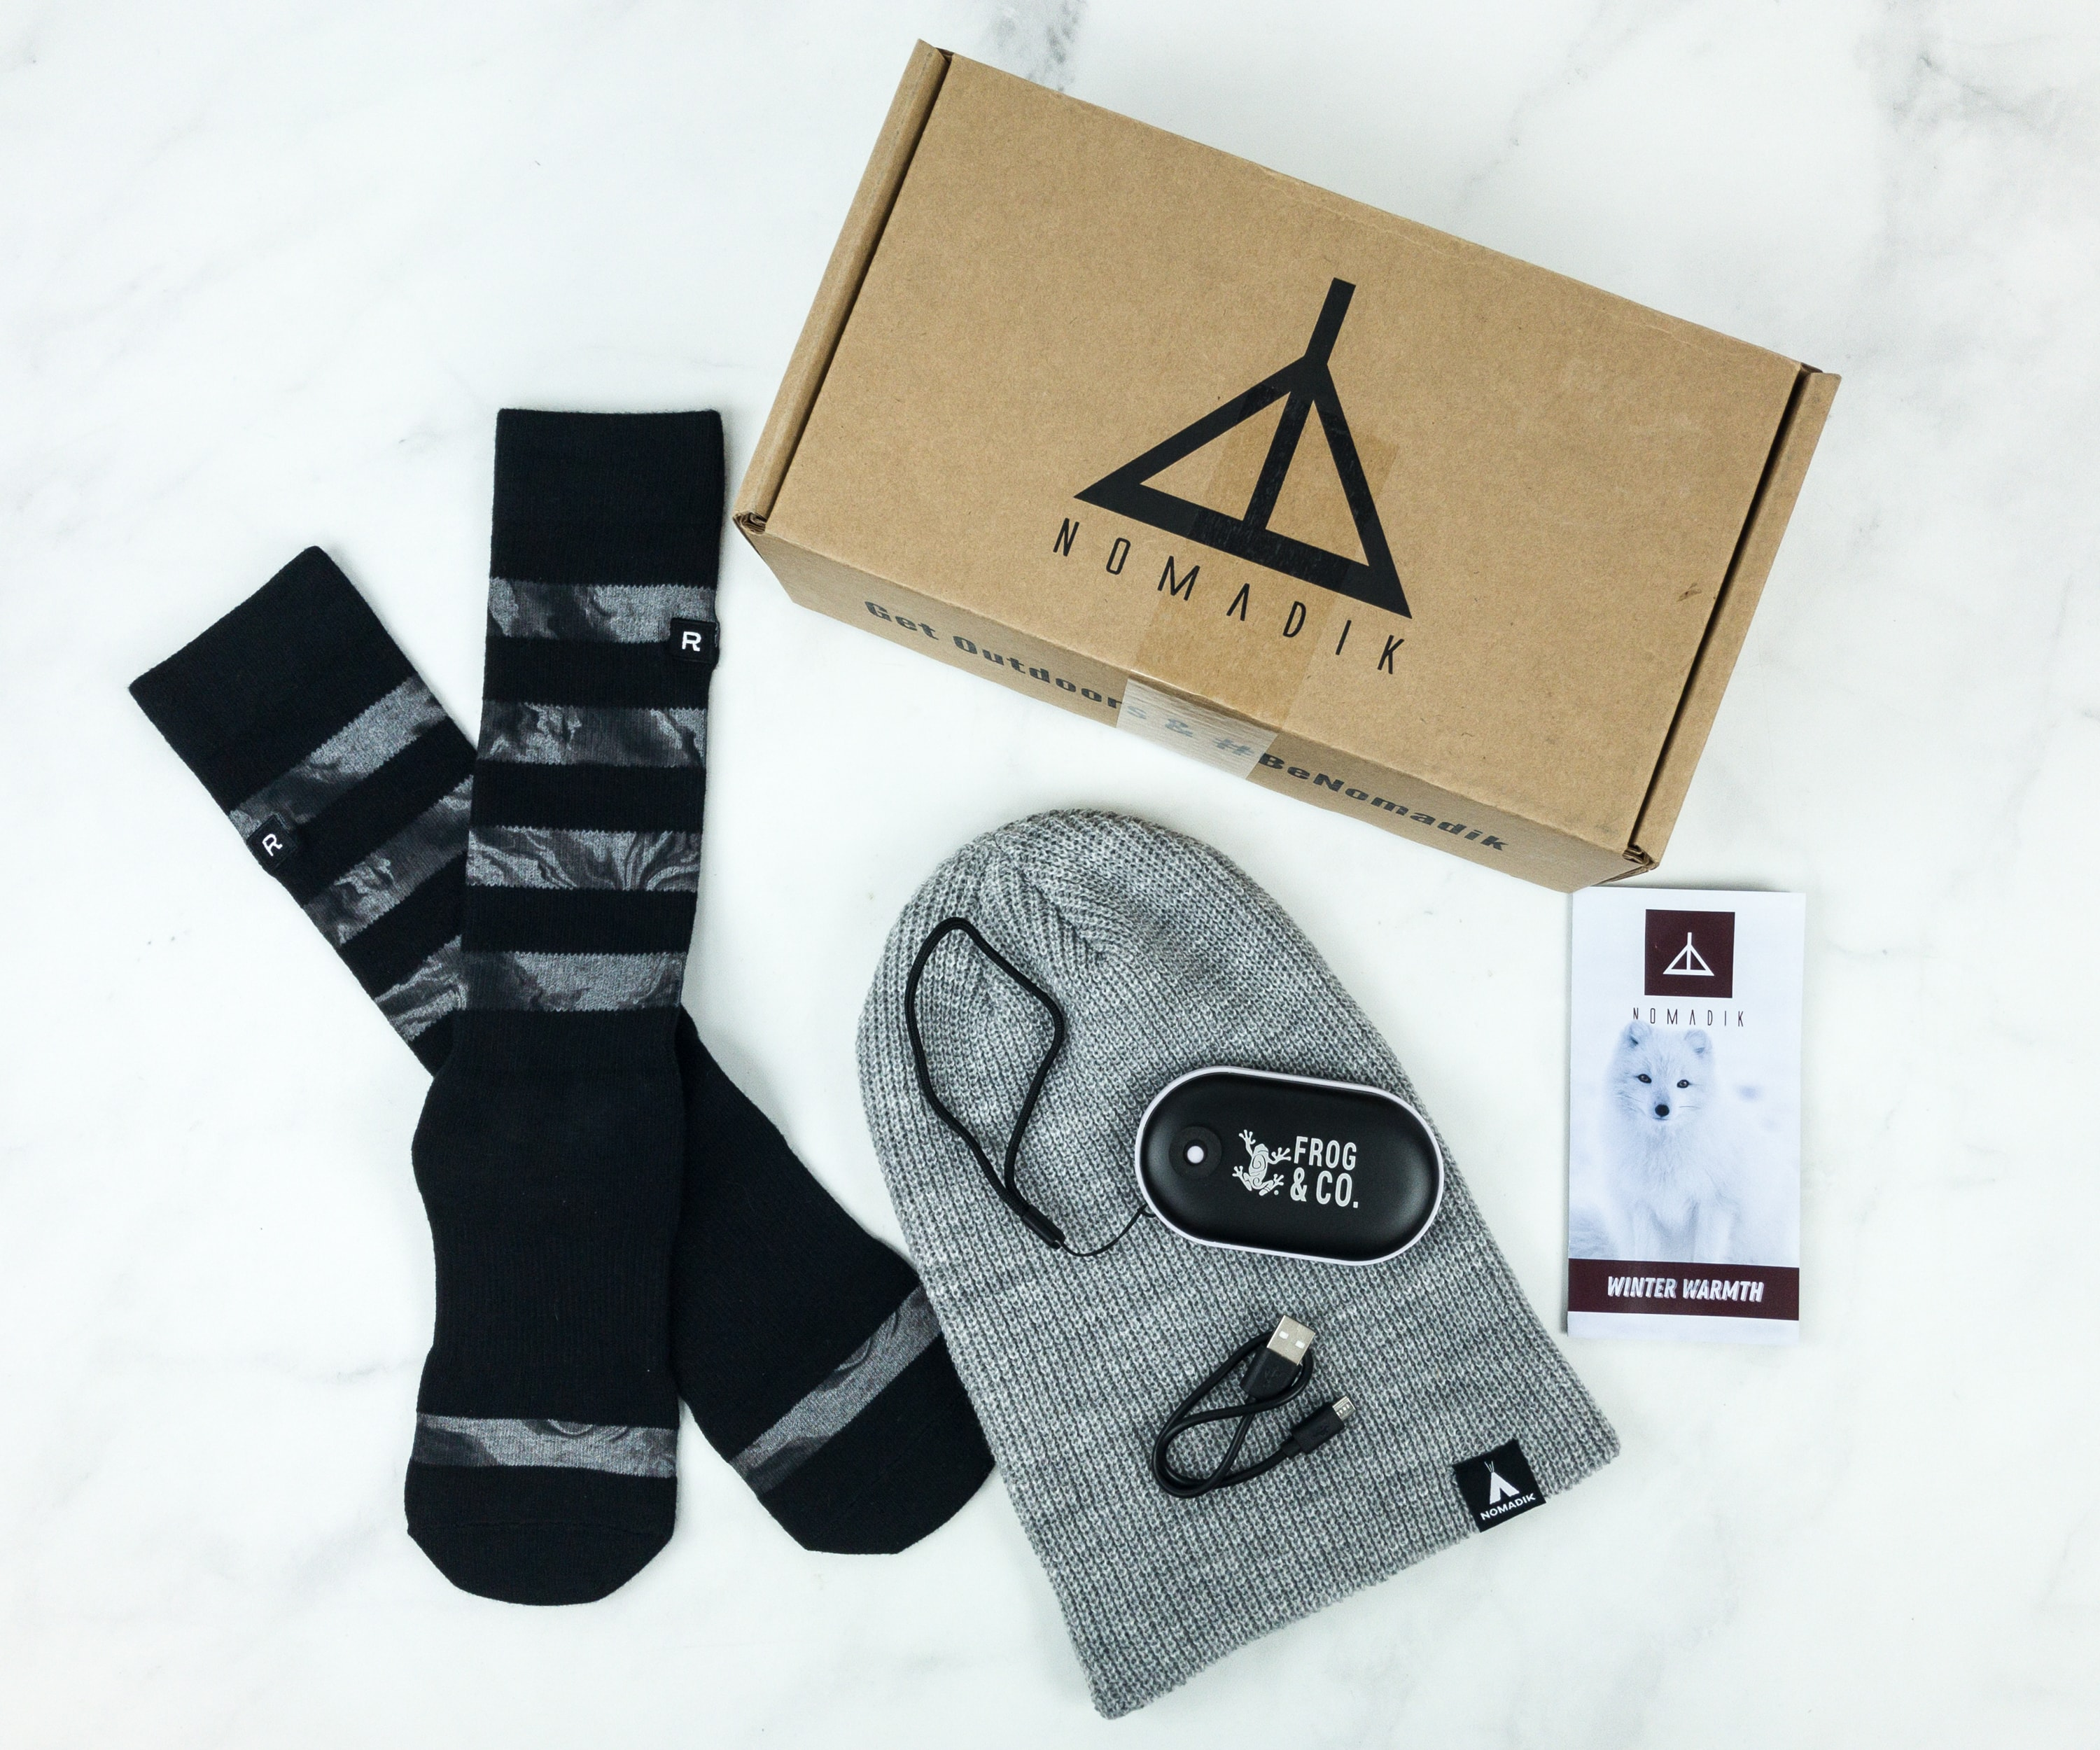 Nomadik December 2018 Subscription Box Review + Coupon